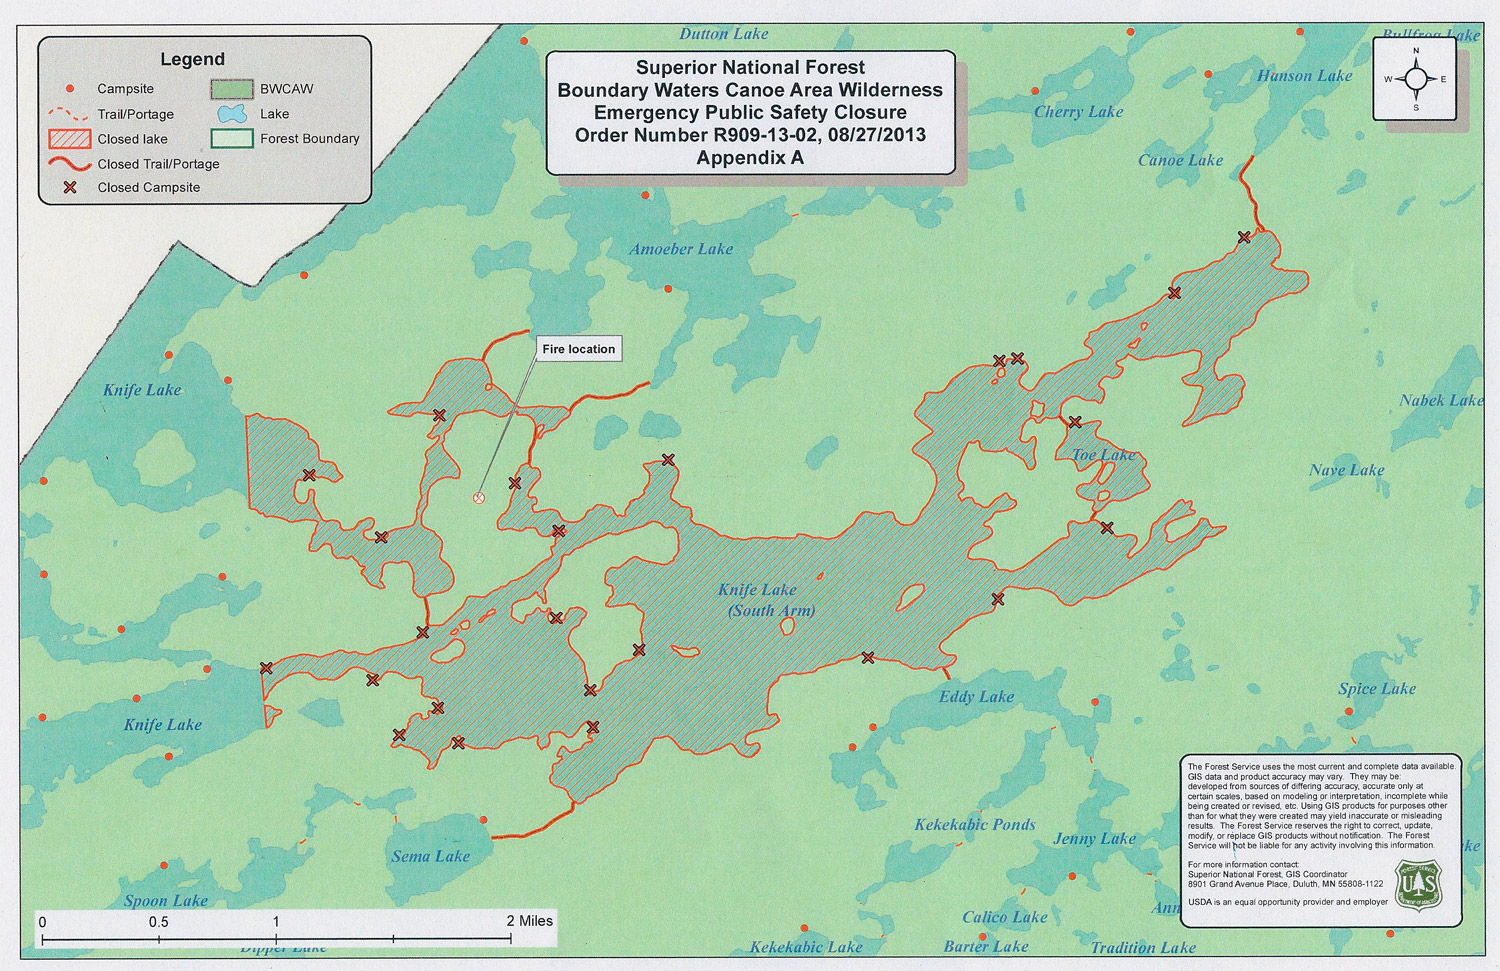 Piragis Northwoods Company Boundary Waters Blog: Fire in Boundary ...